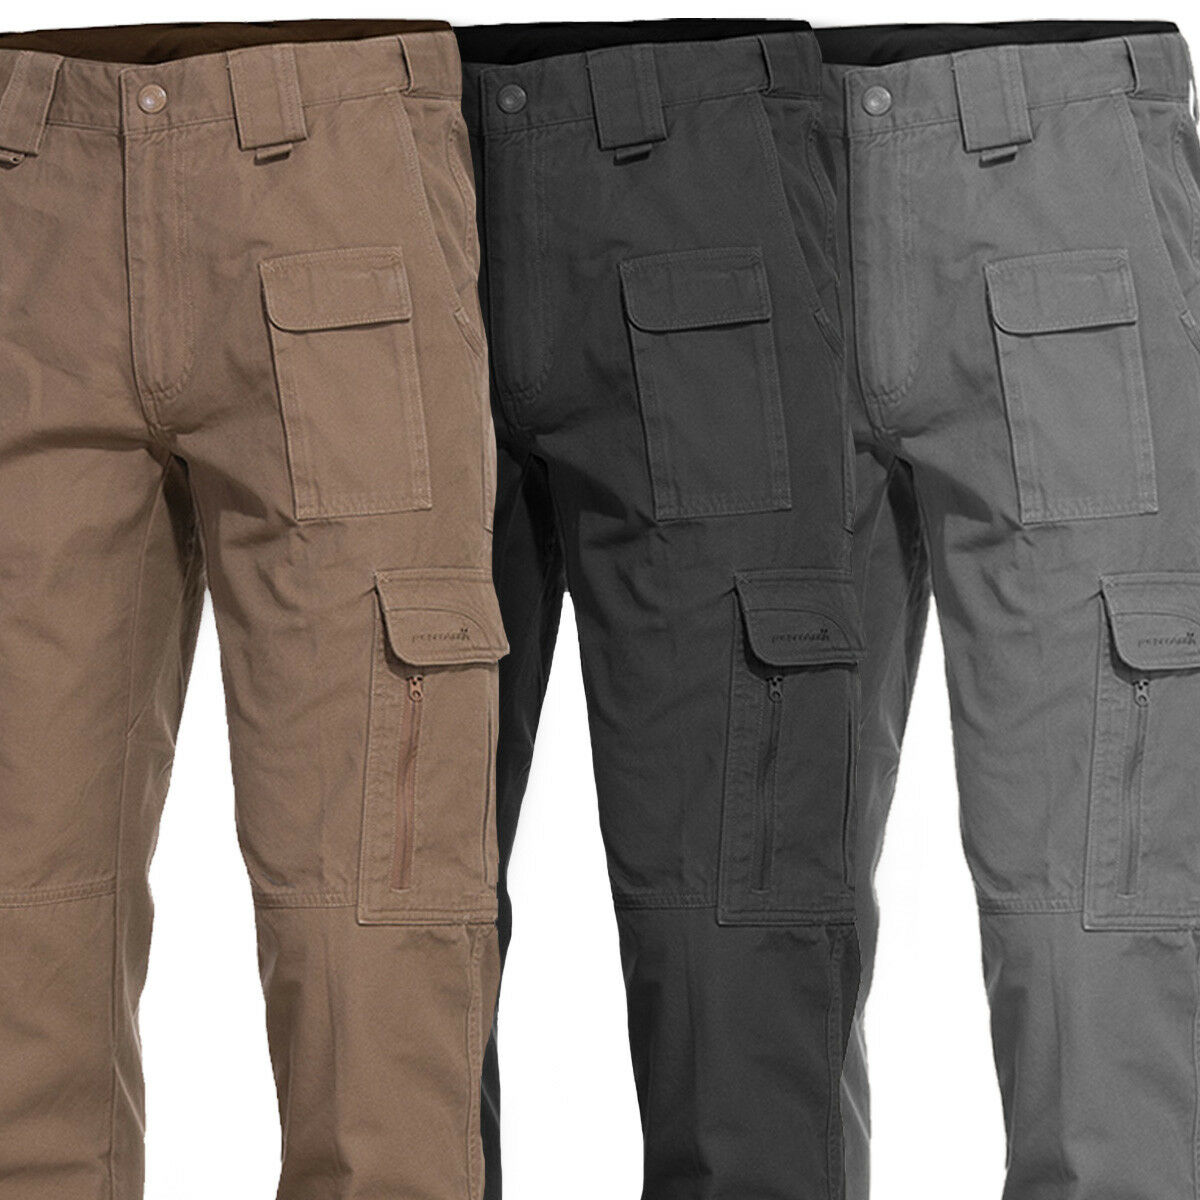 Pentagon Elgon 2.0 Heavy Duty Cotton Tactical Military Army Cargo Trousers Pants